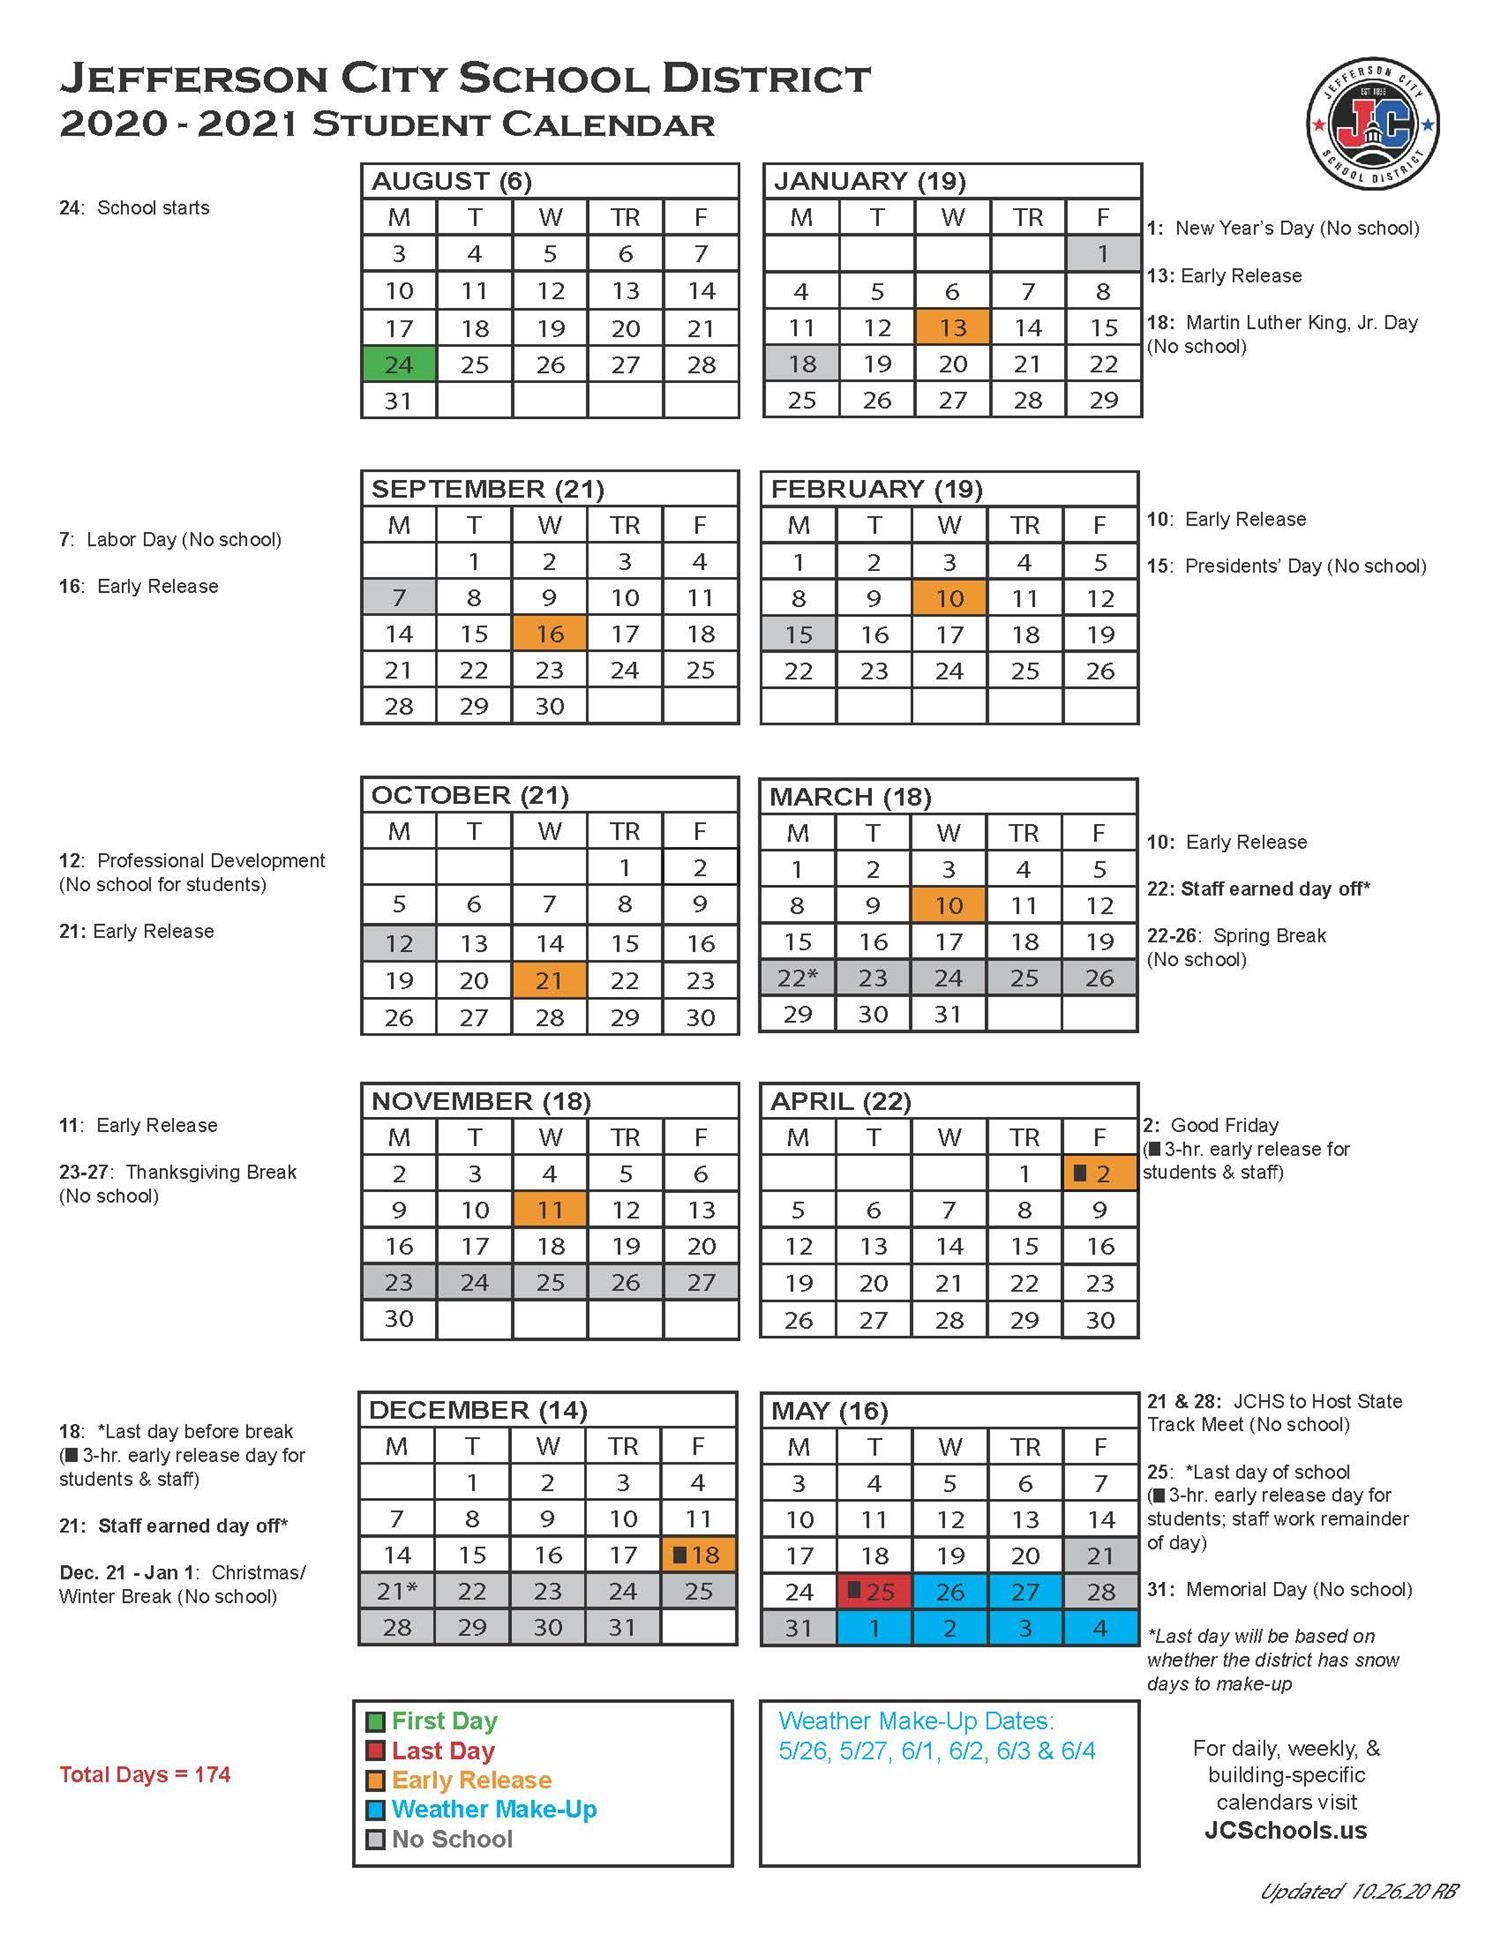 Annual District Calendar / 2020-2021 Student Calendar